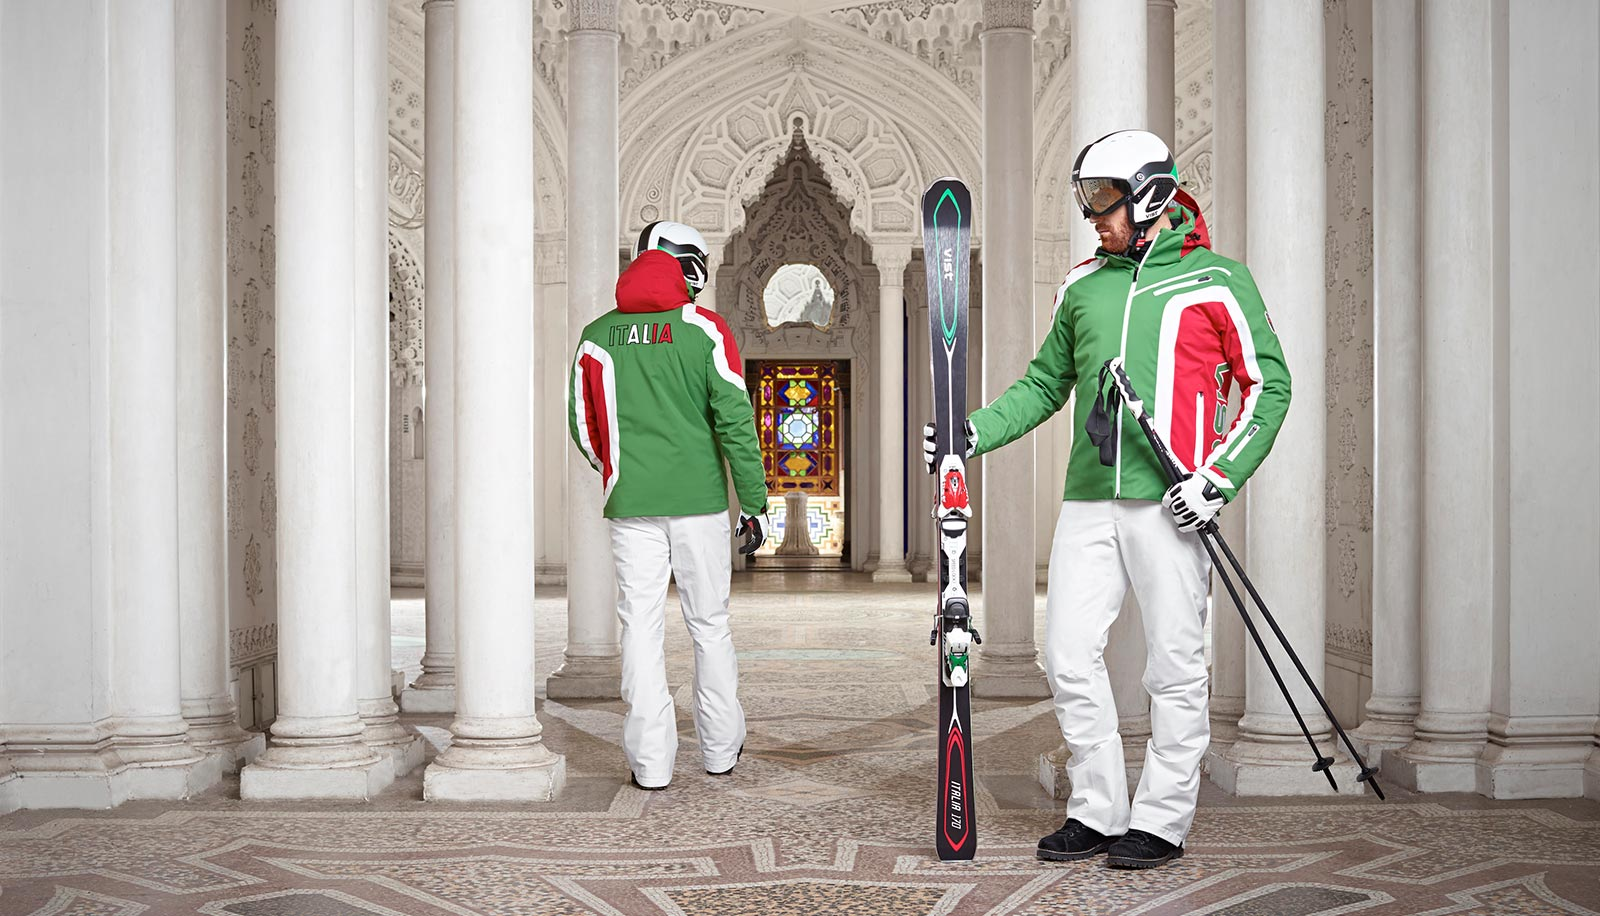 Two fully equipped skier in a Middle Eastern looking hall